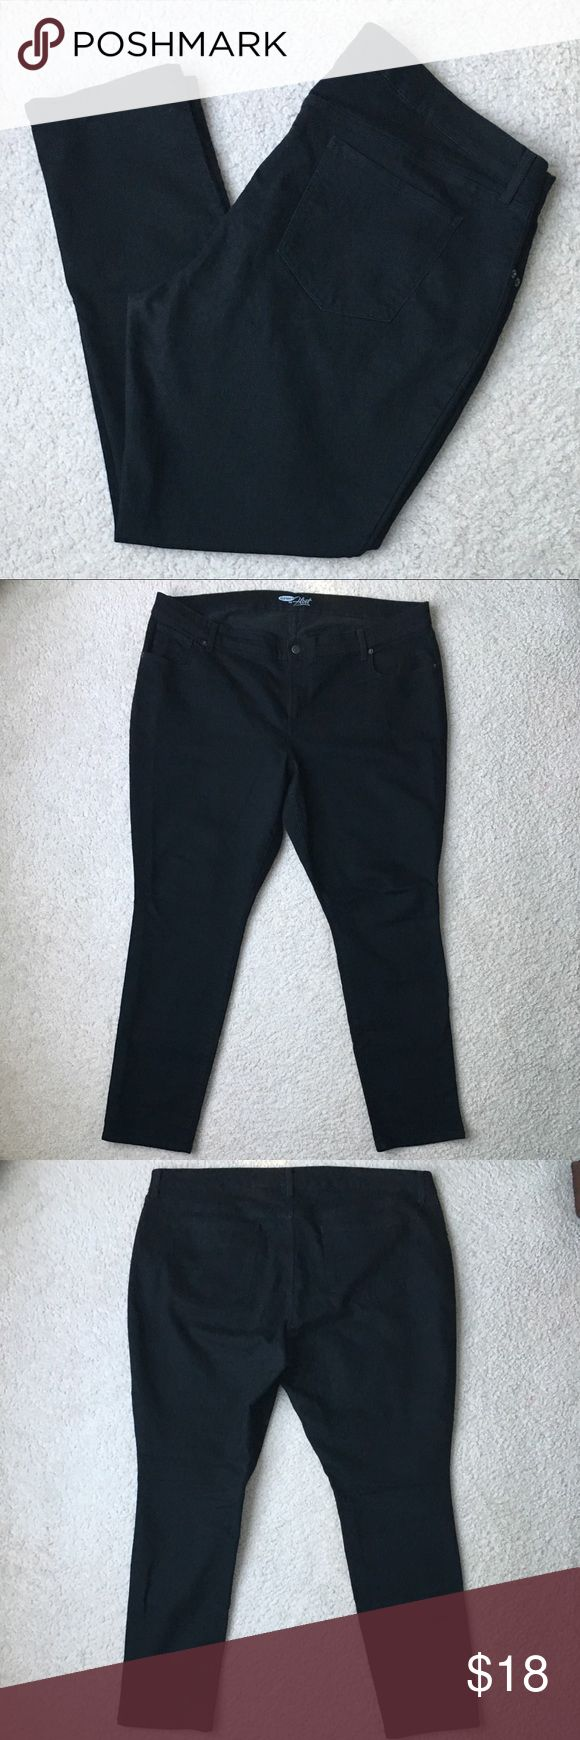 """Old Navy """"The Flirt"""" Black Jeans Size 20 Old Navy """"The Flirt"""" Black Jeans Size 20. Slightly worn between legs as shown in last pic. Worn a few times but still in overall good condition 👖👖. Old Navy Jeans"""